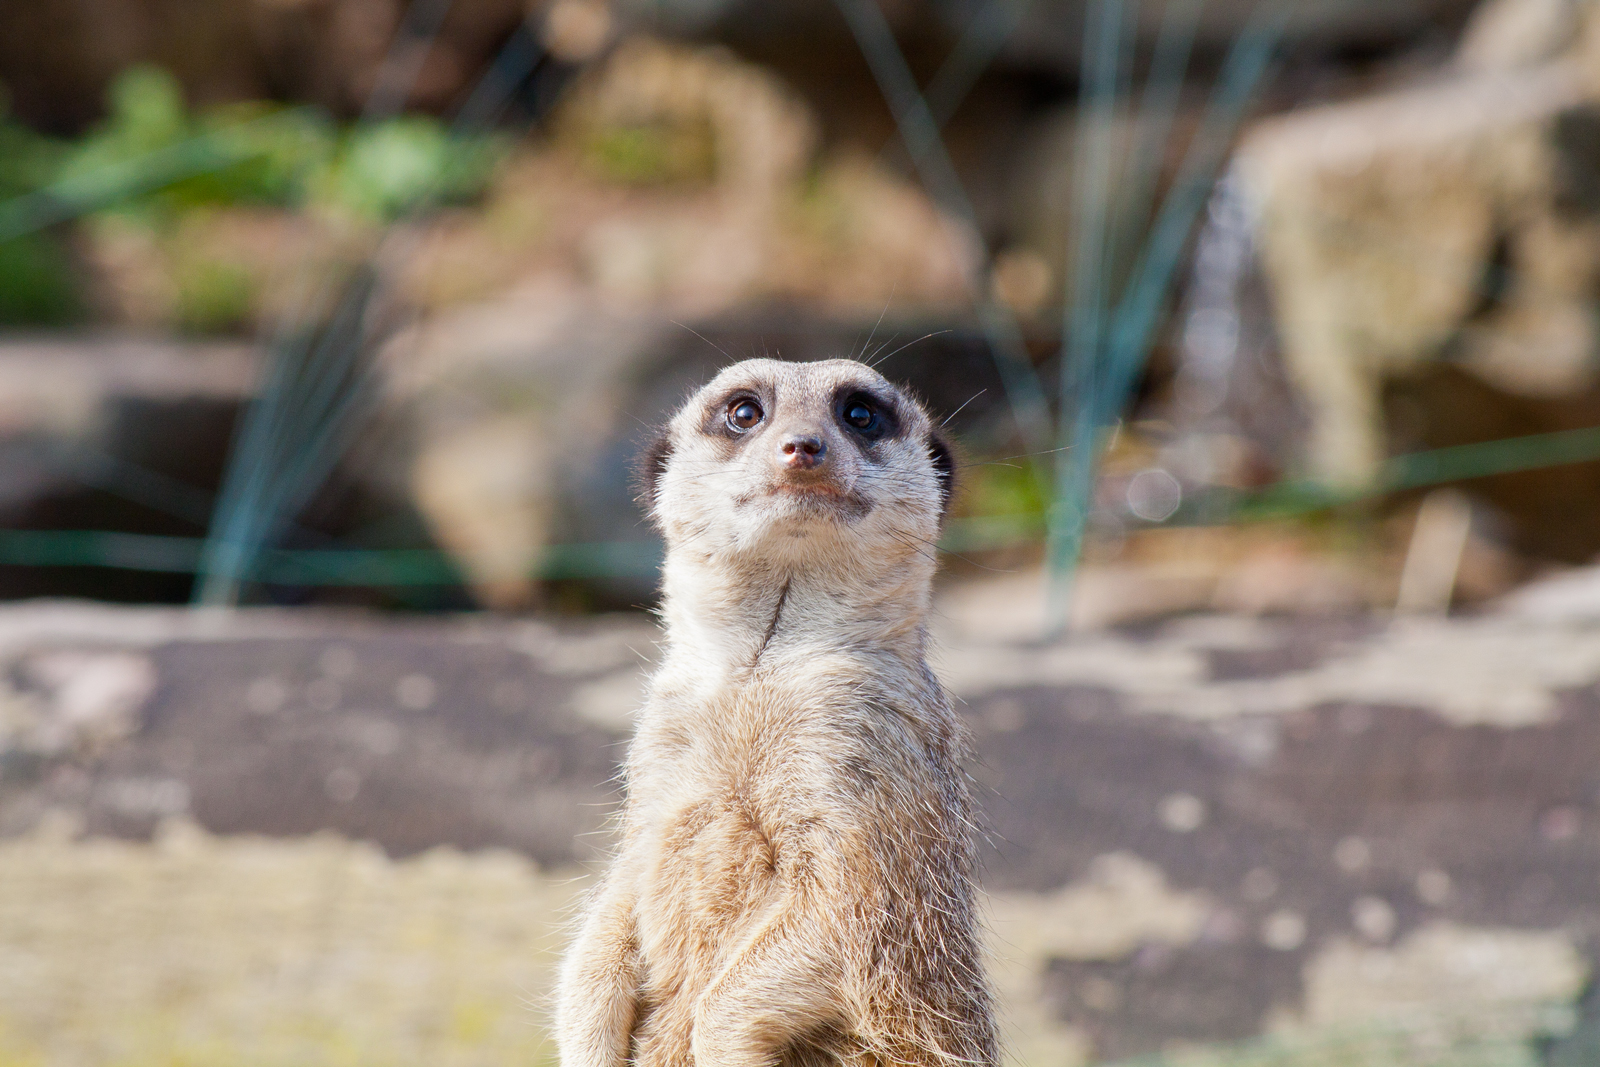 Meerkat - Compare my Meerkat - Fota Wildlife Park Meerkat or Meercat - Cute photo